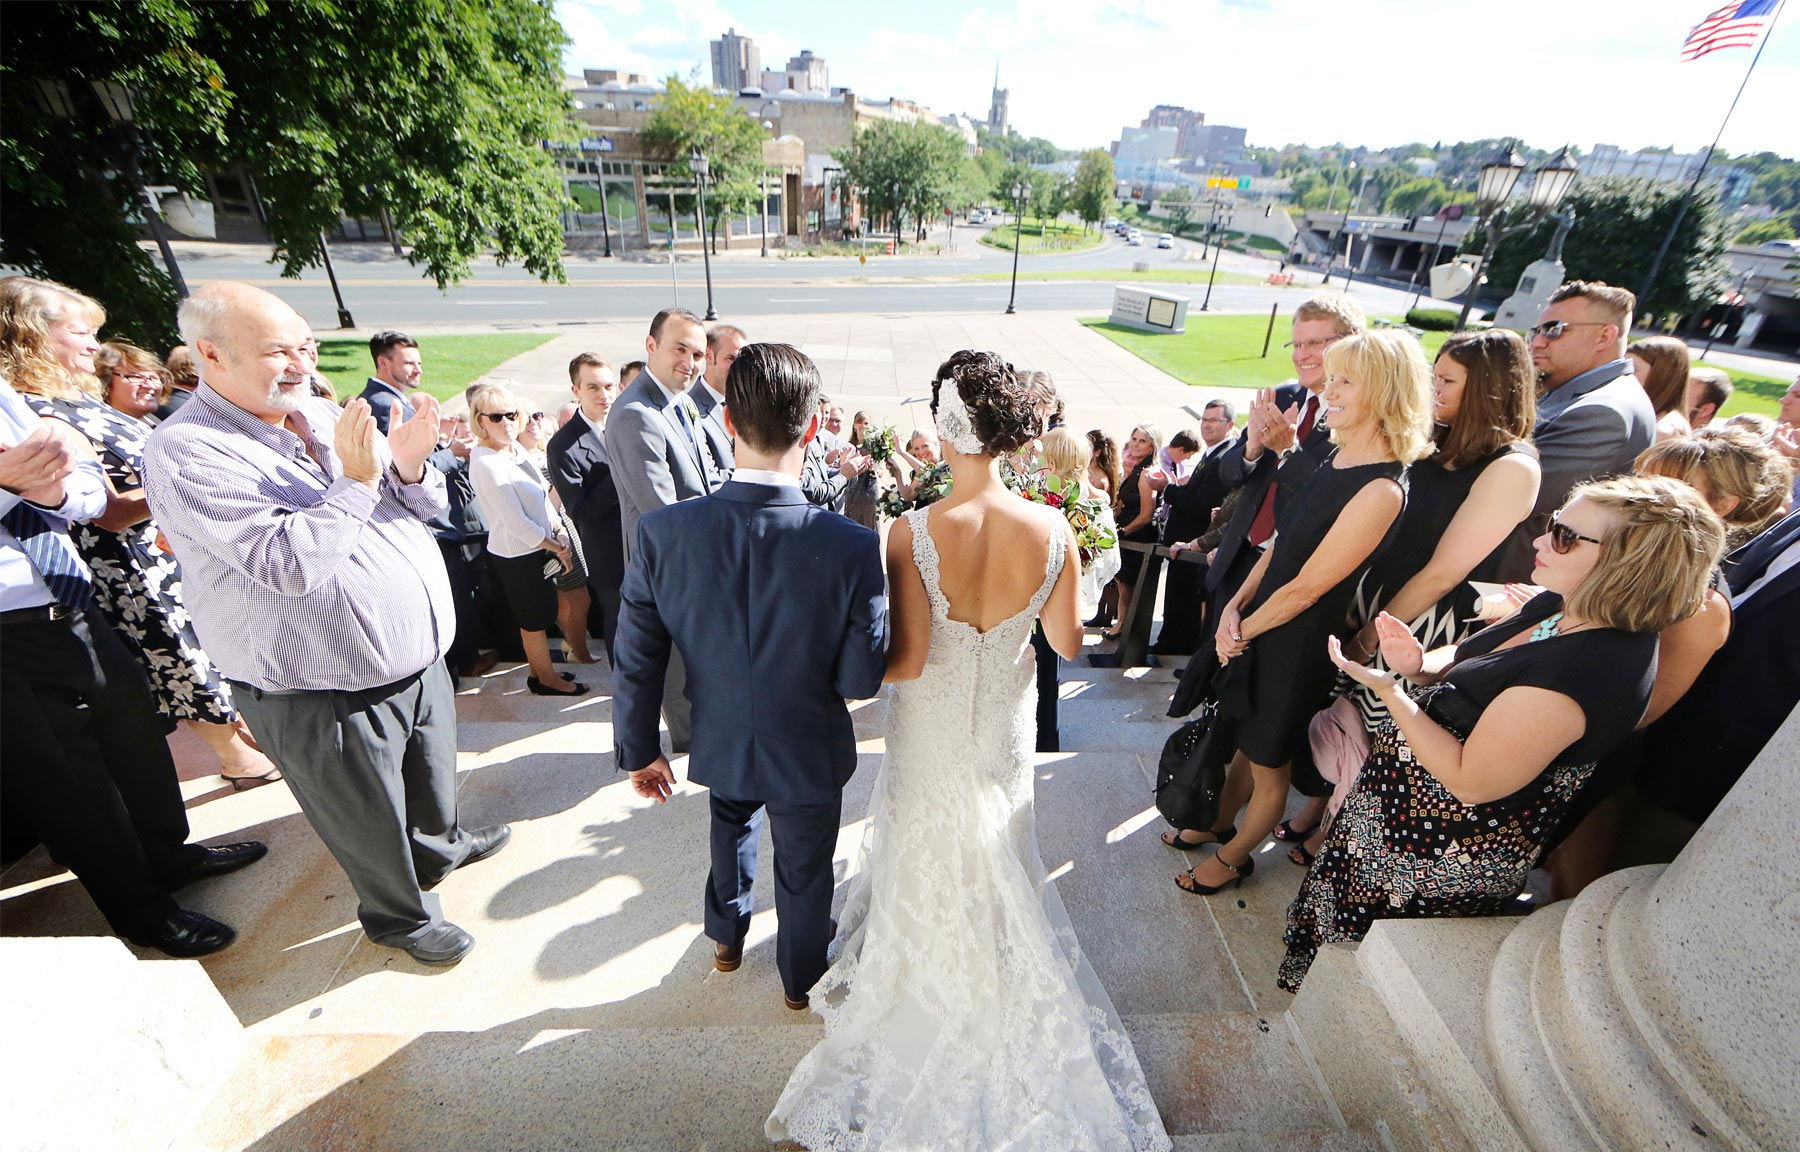 15-Minneapolis-Minnesota-Wedding-Photographer-by-Andrew-Vick-Photography-Summer-Basilica-of-Saint-Mary-Church-Recessional-Bride-Groom-Guests-Ashley-and-Eric.jpg